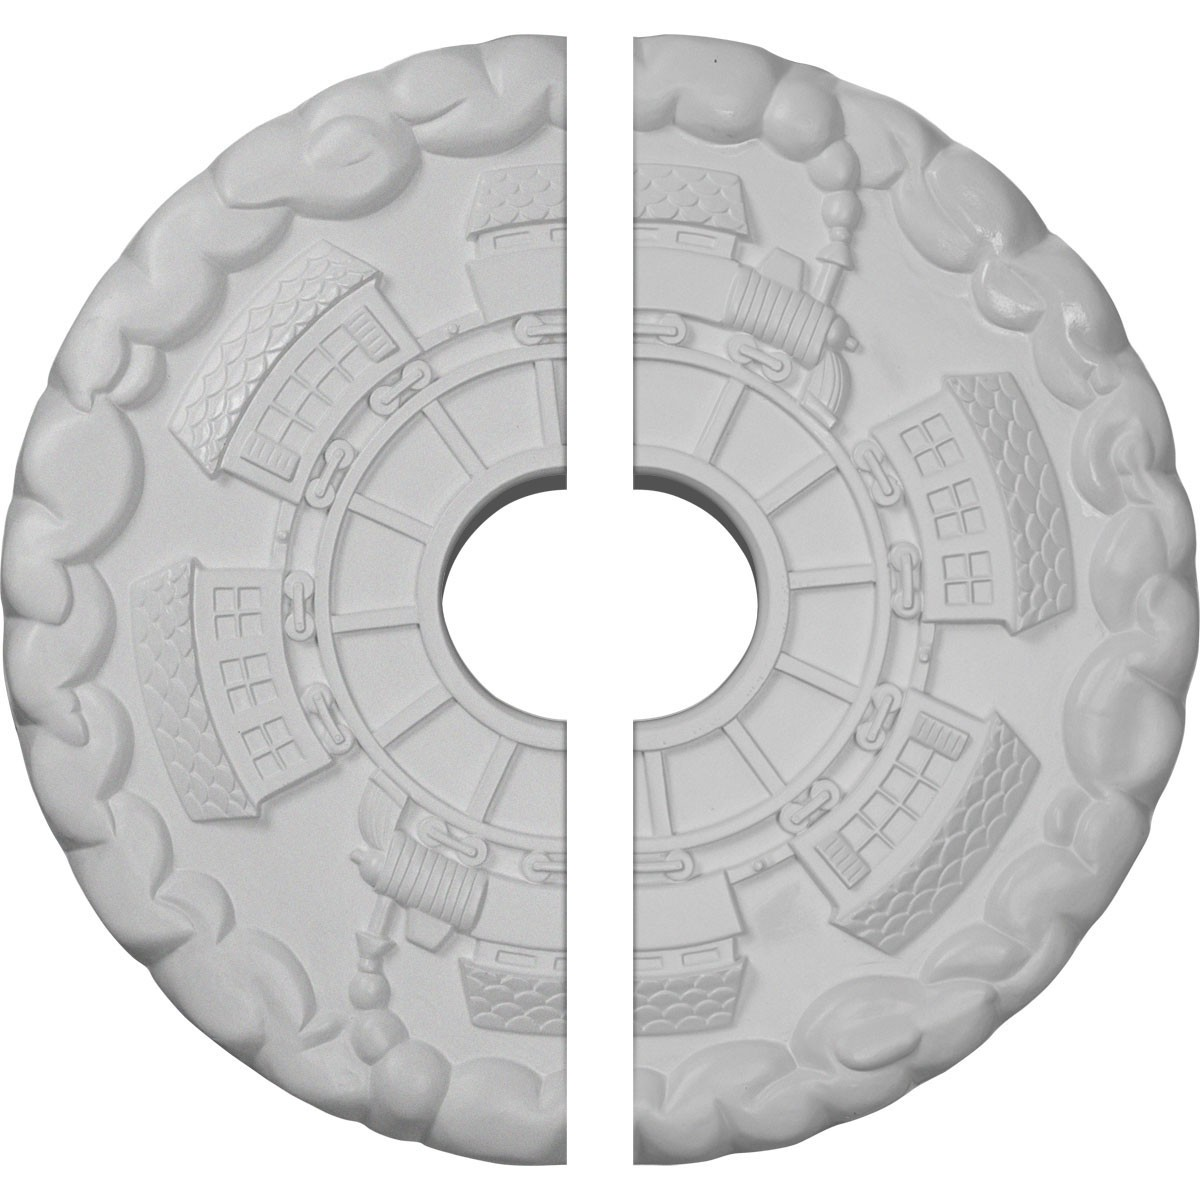 """EM-CM18KD2 - 18 1/2""""OD x 3 7/8""""ID x 1""""P Kendall Train Station Ceiling Medallion, Two Piece (Fits Canopies up to 3 7/8"""")"""